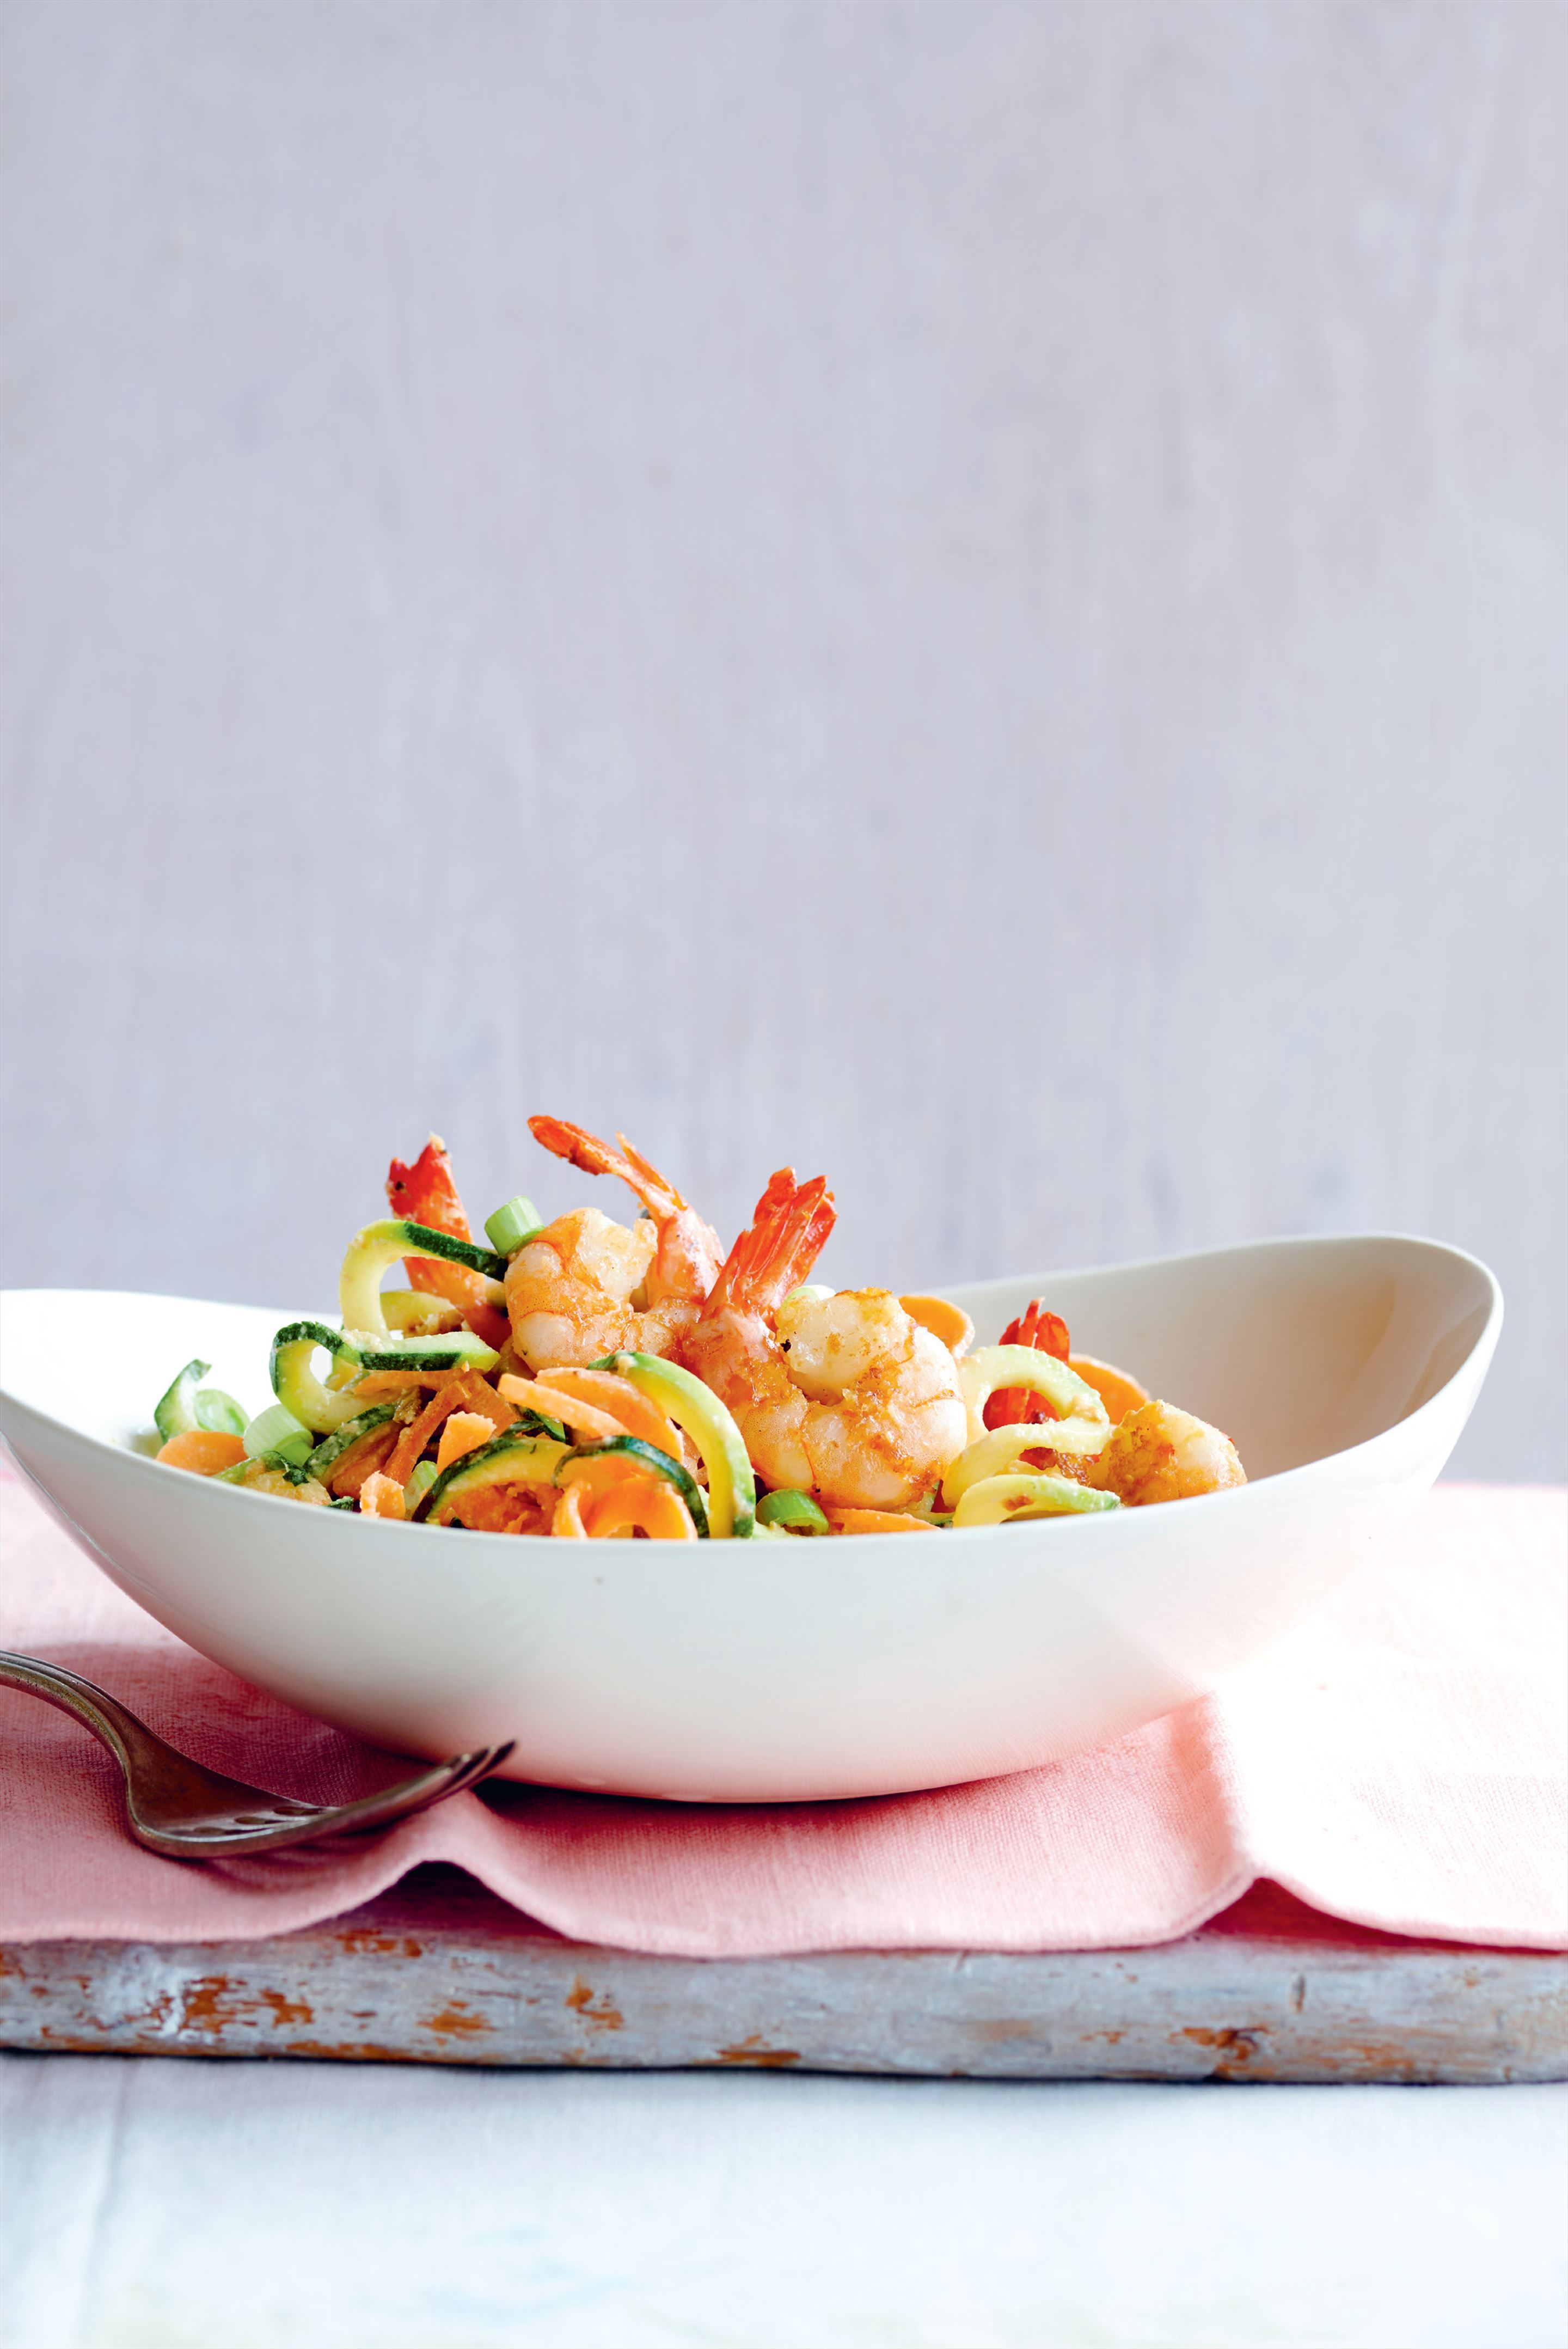 Courgetti and prawns